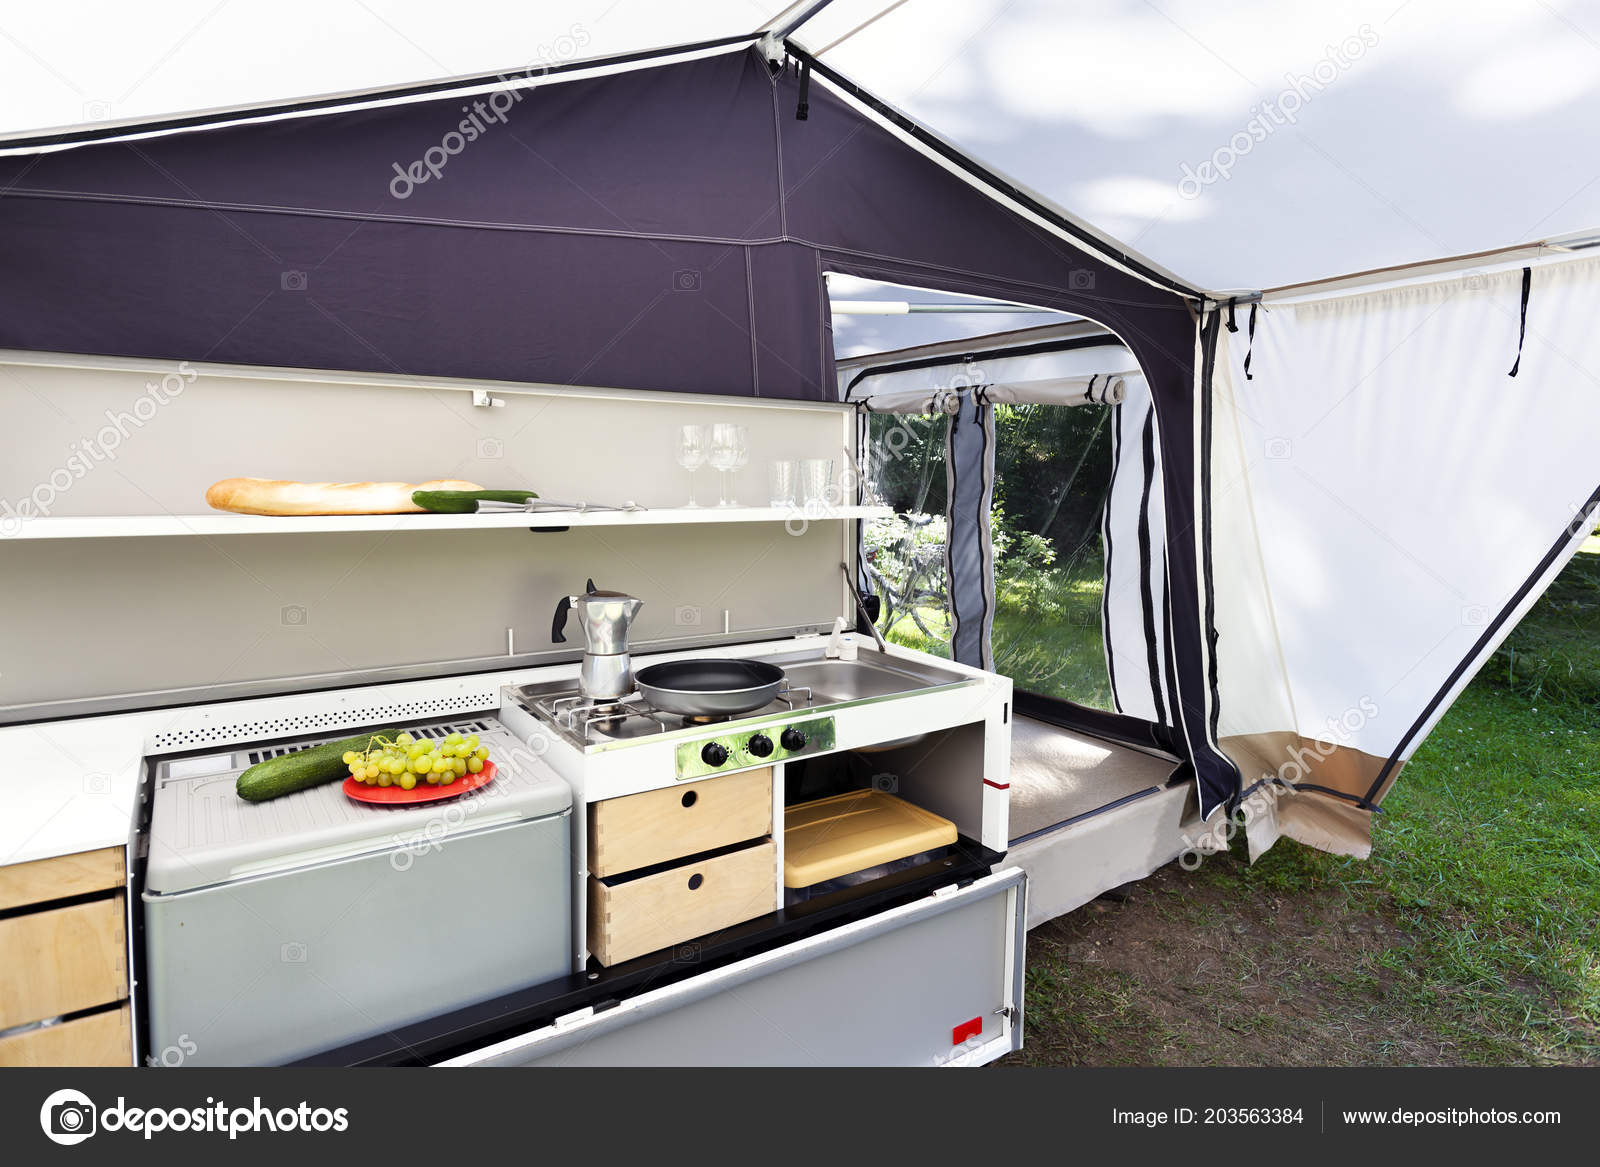 Camping Glamping Kitchen Tent — Stock Photo © kievith #203563384